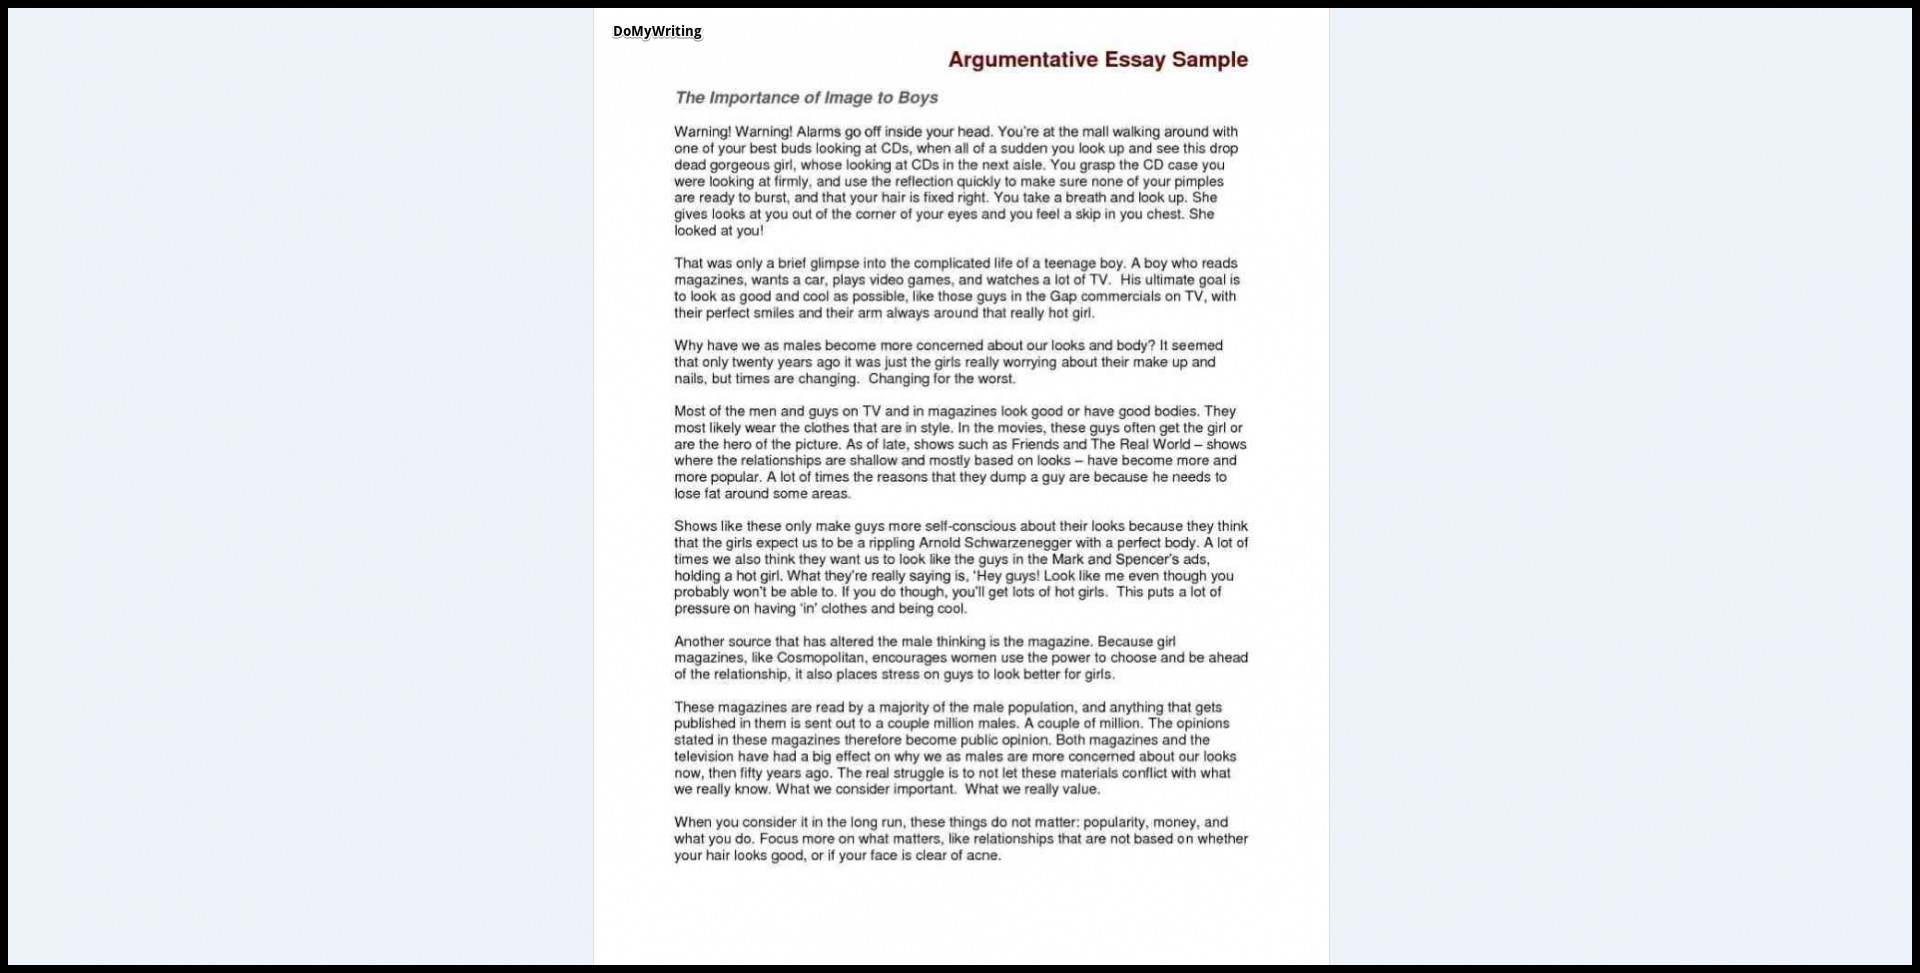 019 Essay Example Argumentative Sample Amazing Topic Funny Topics For College Students Secondary School Controversial Music 1920